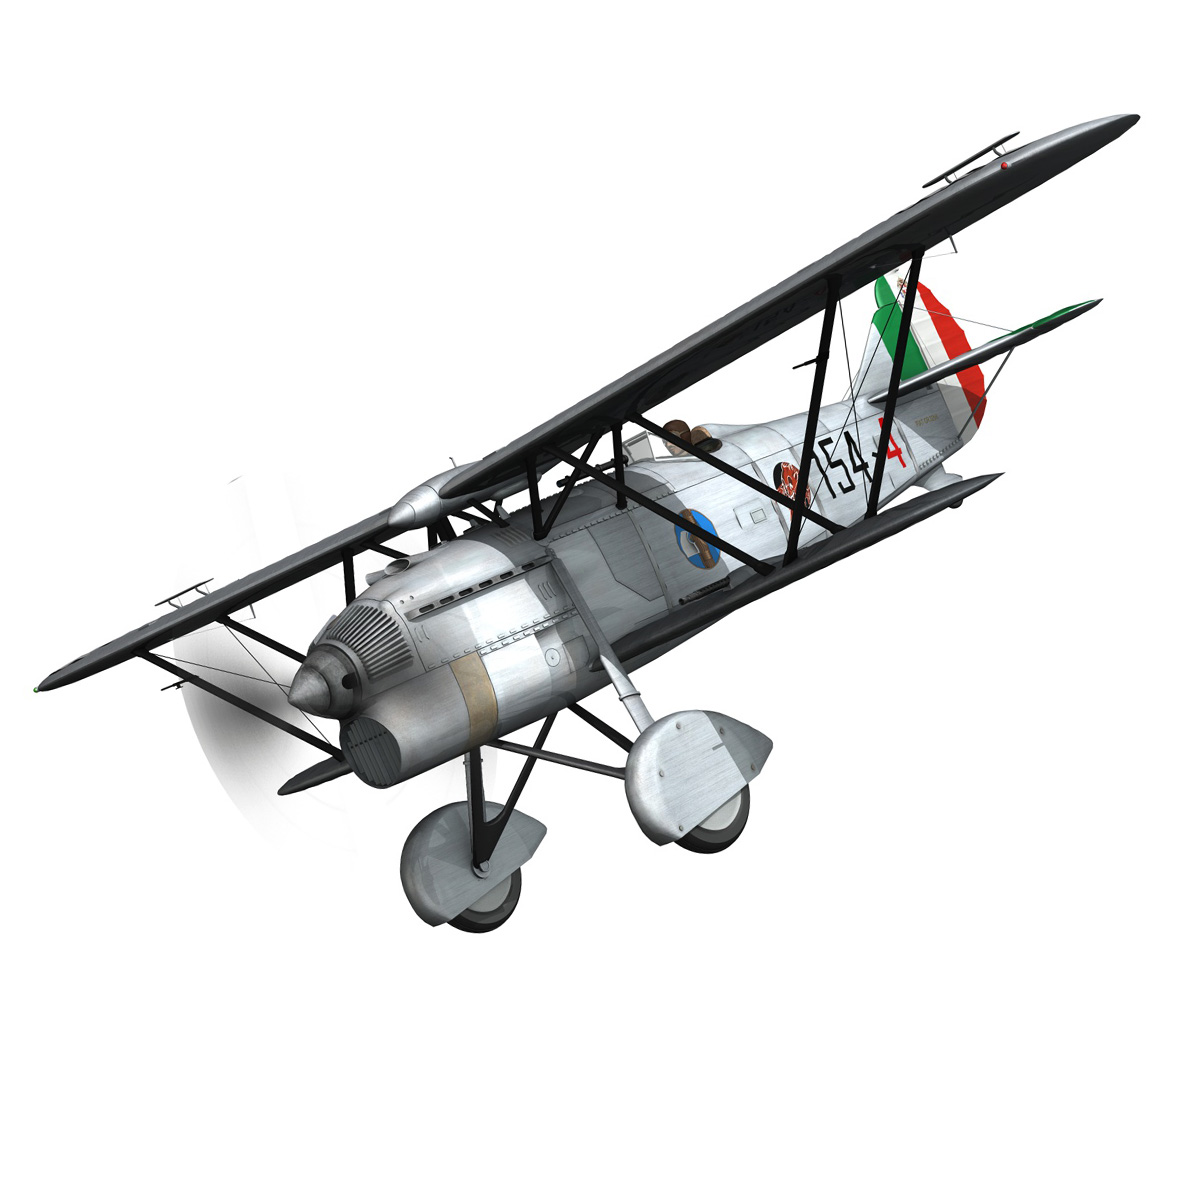 fiat cr.32 – italy airforce – 154 squadriglia 3d model fbx c4d lwo obj 268134